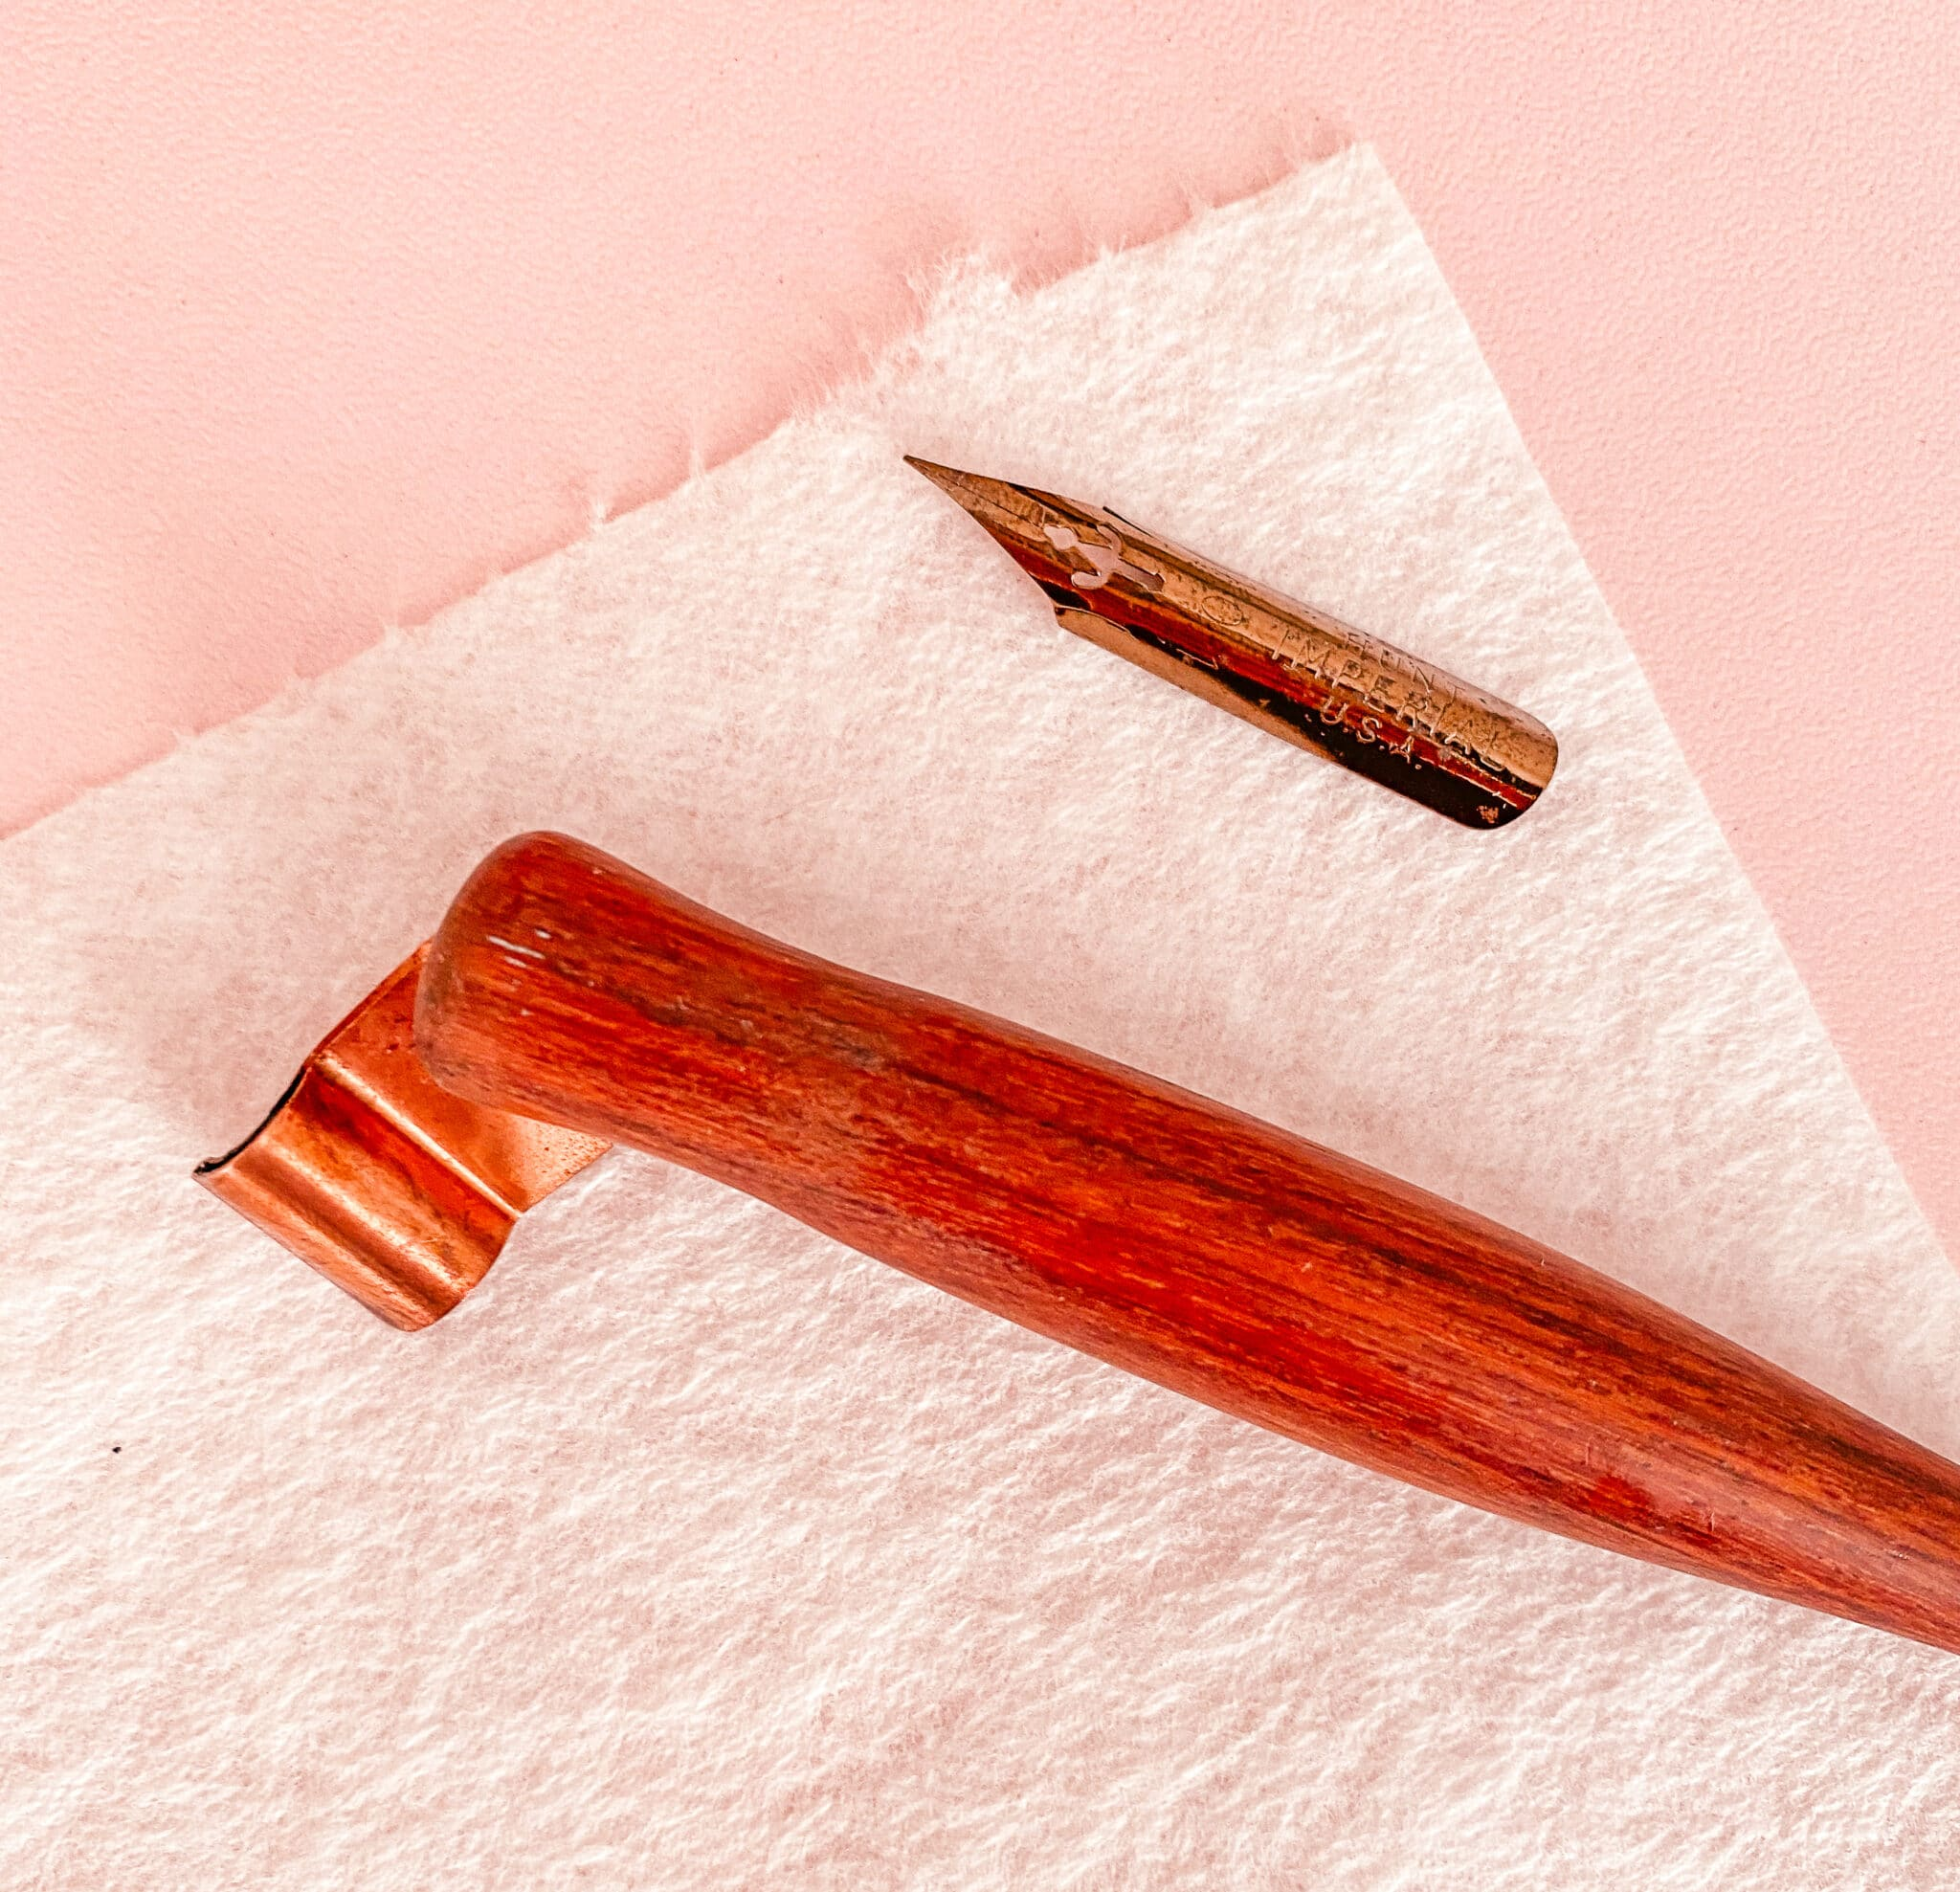 How to prepare your calligrapby nibs - Lettering Daily (3 of 9)